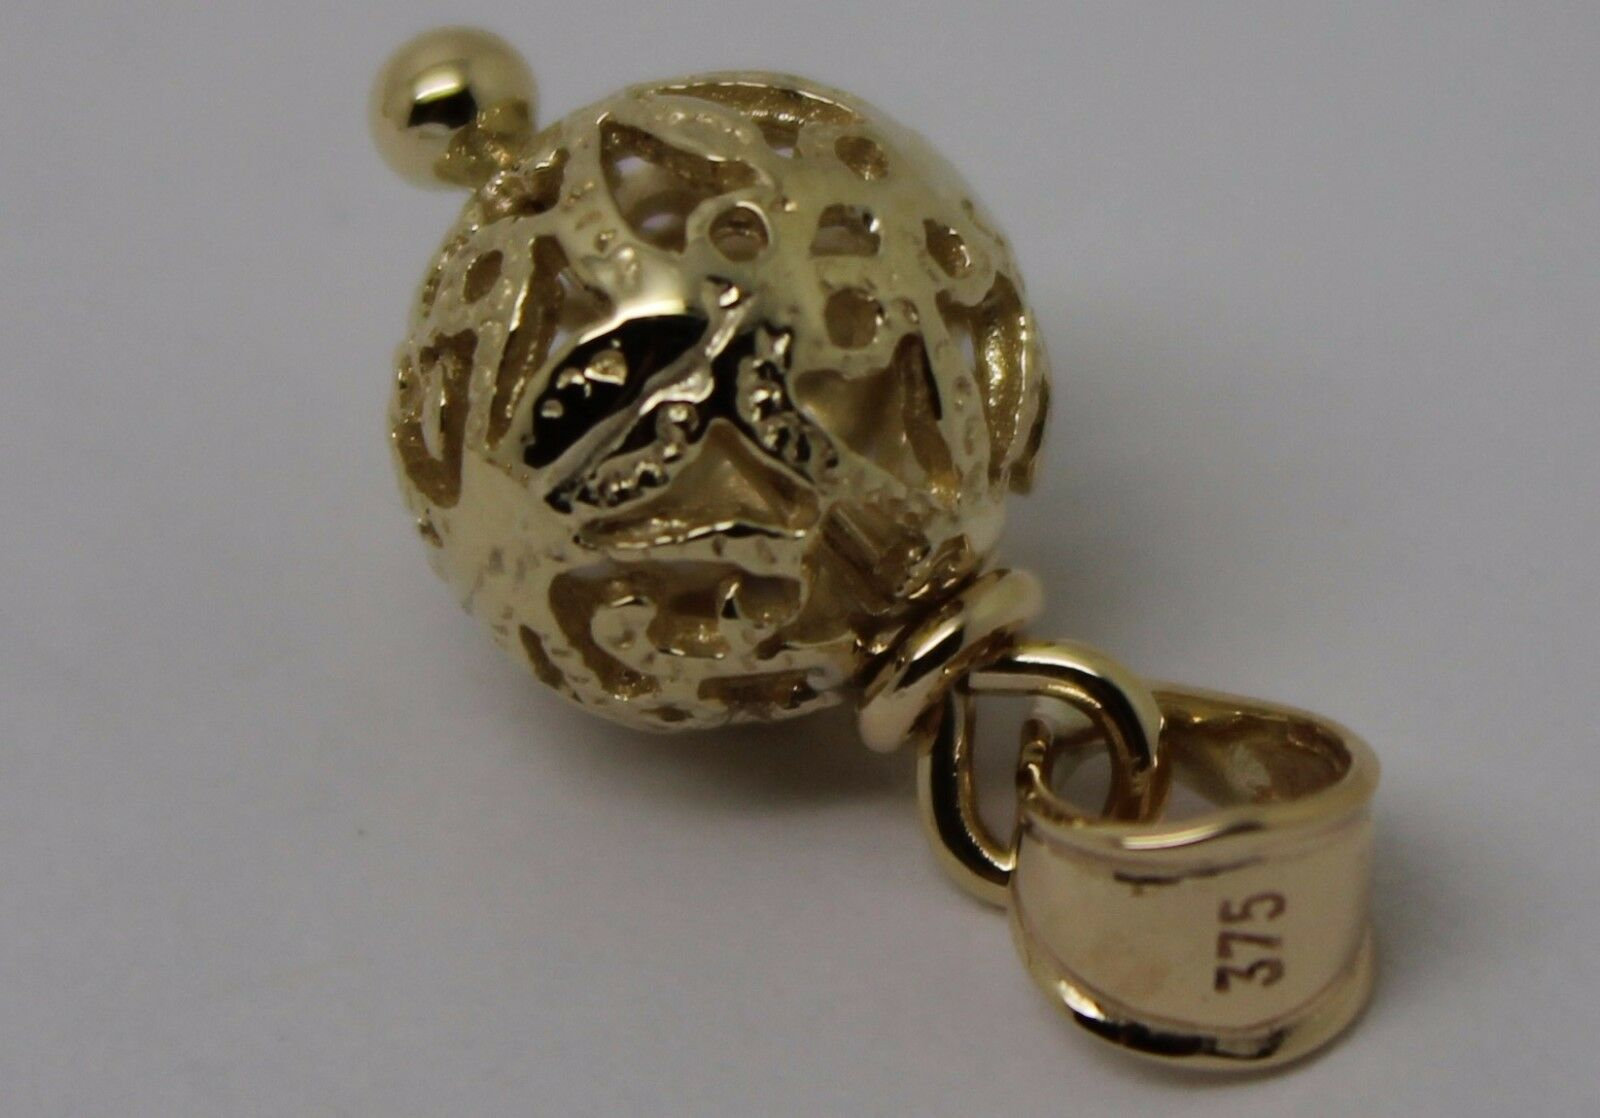 NEW 9CT 9k YELLOW gold 10mm  FILIGREE BALL PENDANT  FREE EXPRESS POST IN OZ